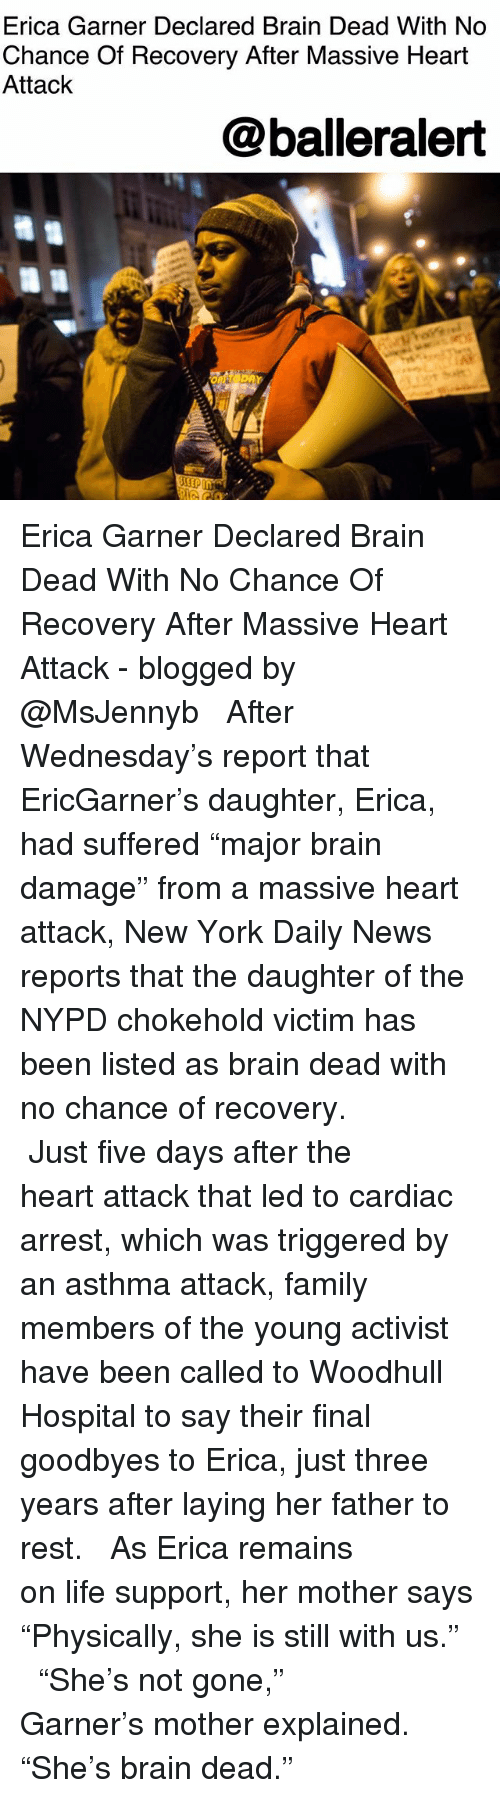 "Family, Life, and Memes: Erica Garner Declared Brain Dead With No  Chance Of Recovery After Massive Heart  Attack  @balleralert Erica Garner Declared Brain Dead With No Chance Of Recovery After Massive Heart Attack - blogged by @MsJennyb ⠀⠀⠀⠀⠀⠀⠀ ⠀⠀⠀⠀⠀⠀⠀ After Wednesday's report that EricGarner's daughter, Erica, had suffered ""major brain damage"" from a massive heart attack, New York Daily News reports that the daughter of the NYPD chokehold victim has been listed as brain dead with no chance of recovery. ⠀⠀⠀⠀⠀⠀⠀ ⠀⠀⠀⠀⠀⠀⠀ Just five days after the heart attack that led to cardiac arrest, which was triggered by an asthma attack, family members of the young activist have been called to Woodhull Hospital to say their final goodbyes to Erica, just three years after laying her father to rest. ⠀⠀⠀⠀⠀⠀⠀ ⠀⠀⠀⠀⠀⠀⠀ As Erica remains on life support, her mother says ""Physically, she is still with us."" ⠀⠀⠀⠀⠀⠀⠀ ⠀⠀⠀⠀⠀⠀⠀ ""She's not gone,"" Garner's mother explained. ""She's brain dead."""